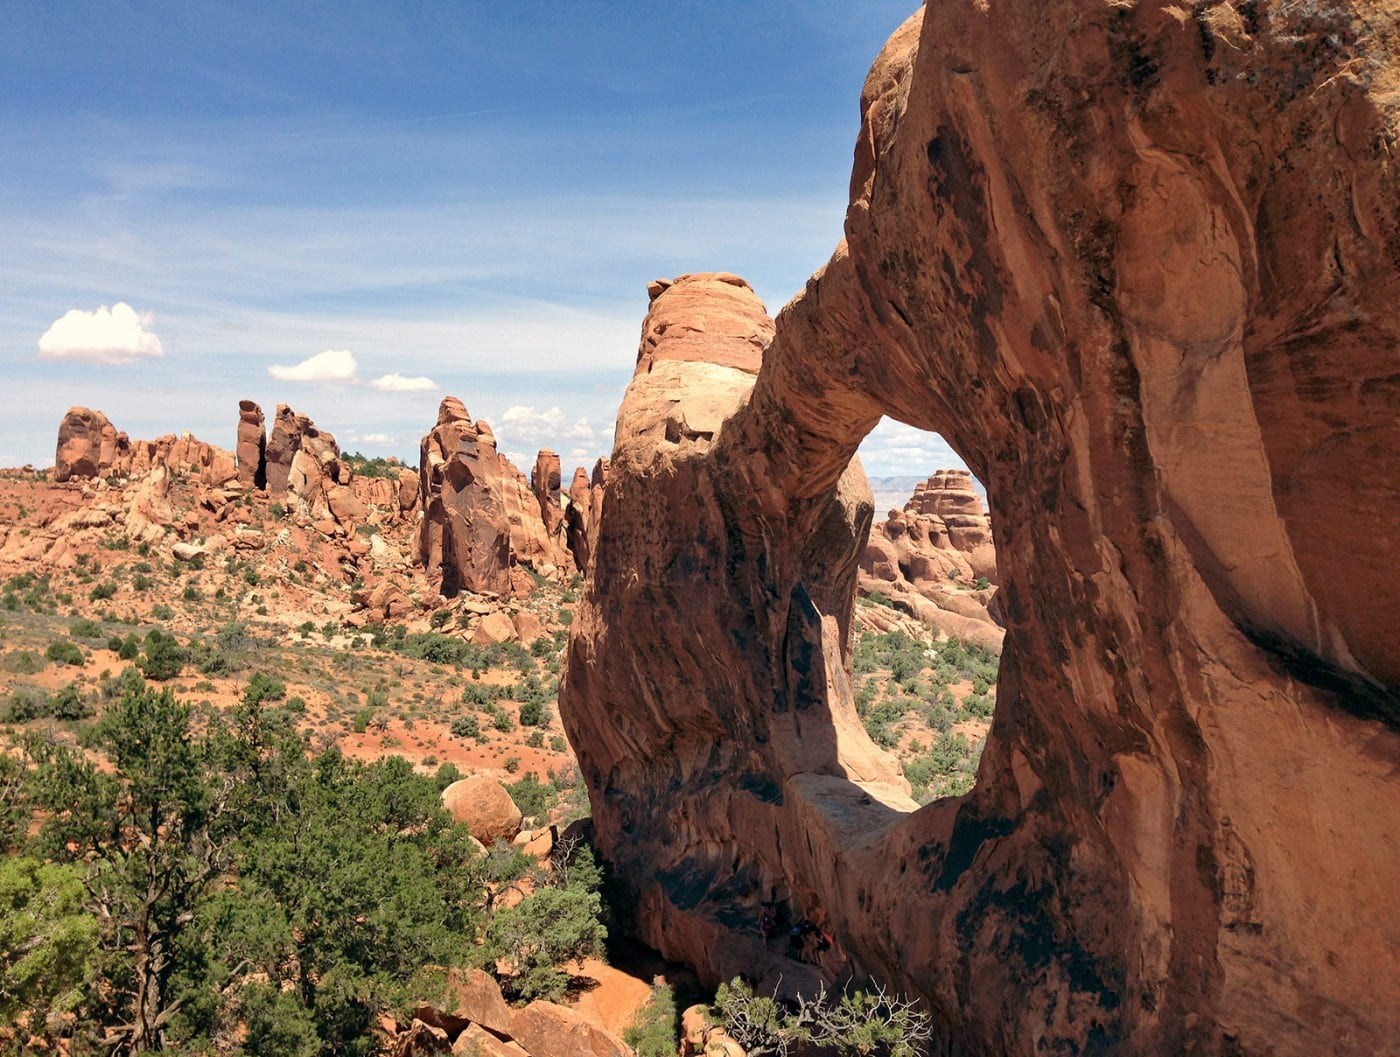 Arches and rock fins in Arches National Park, a perfect place for adventure travel